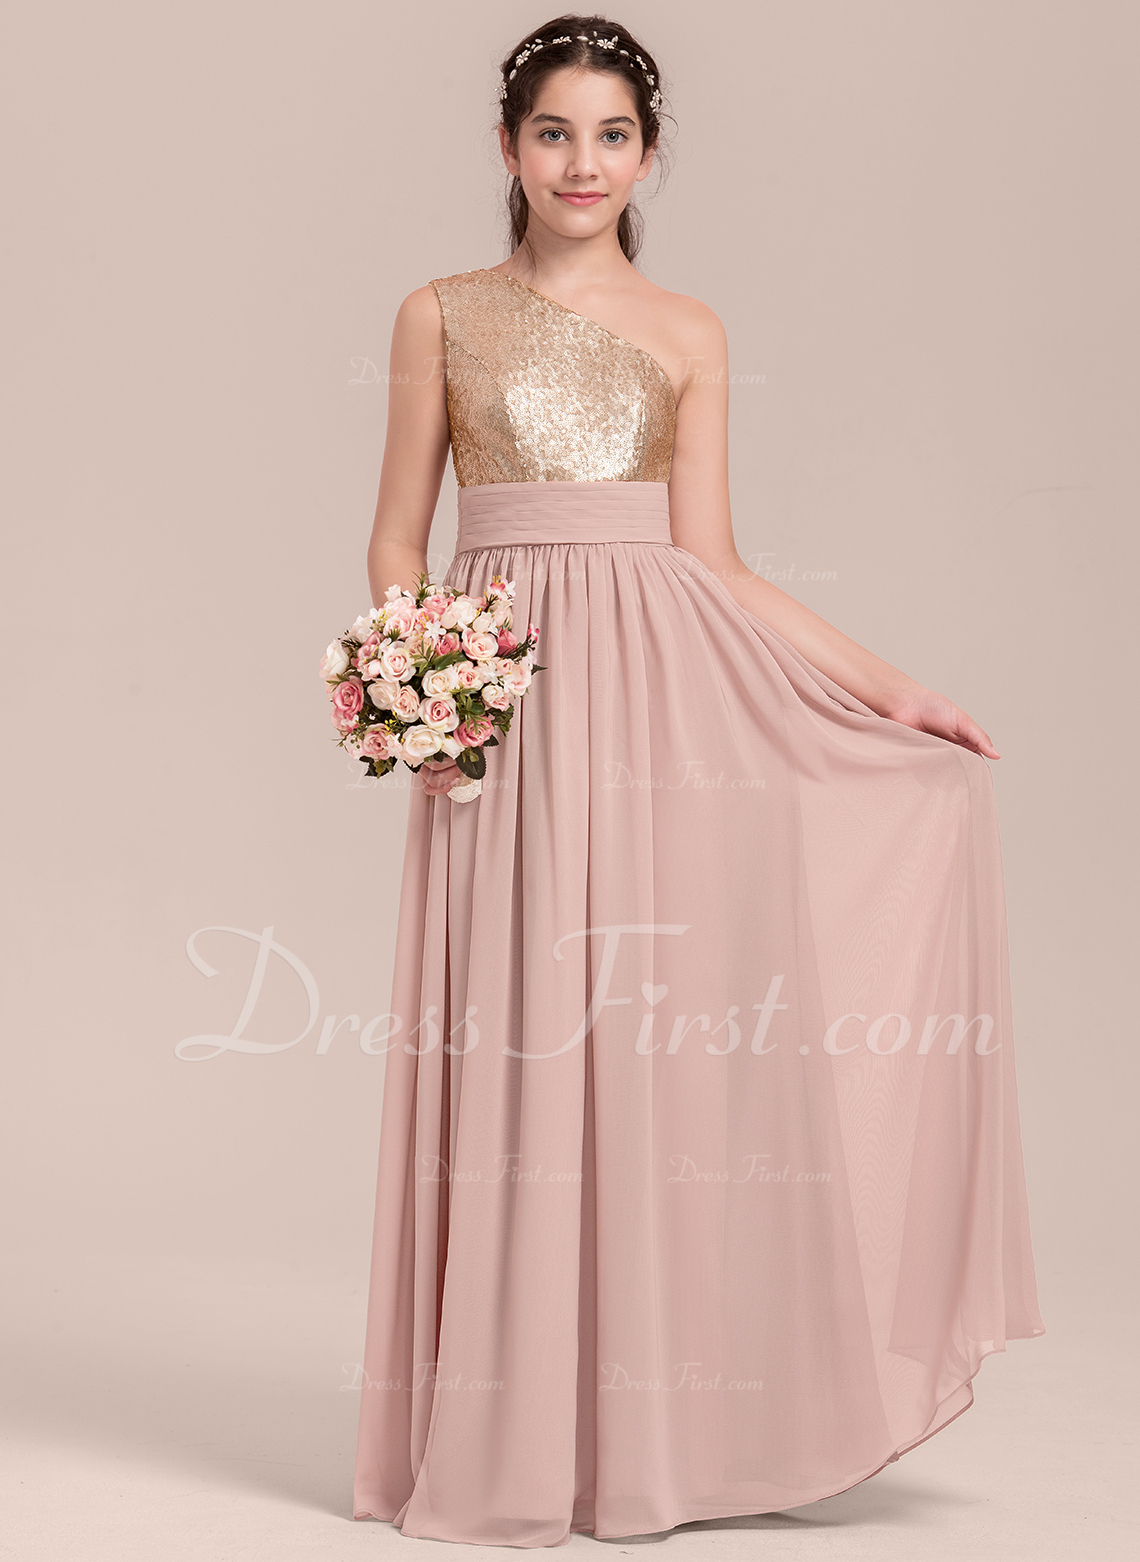 b4cafef40949 Loading zoom. Loading. Color: Dusty Rose. A-Line/Princess One-Shoulder Floor -Length Chiffon Junior Bridesmaid Dress With Ruffle ...